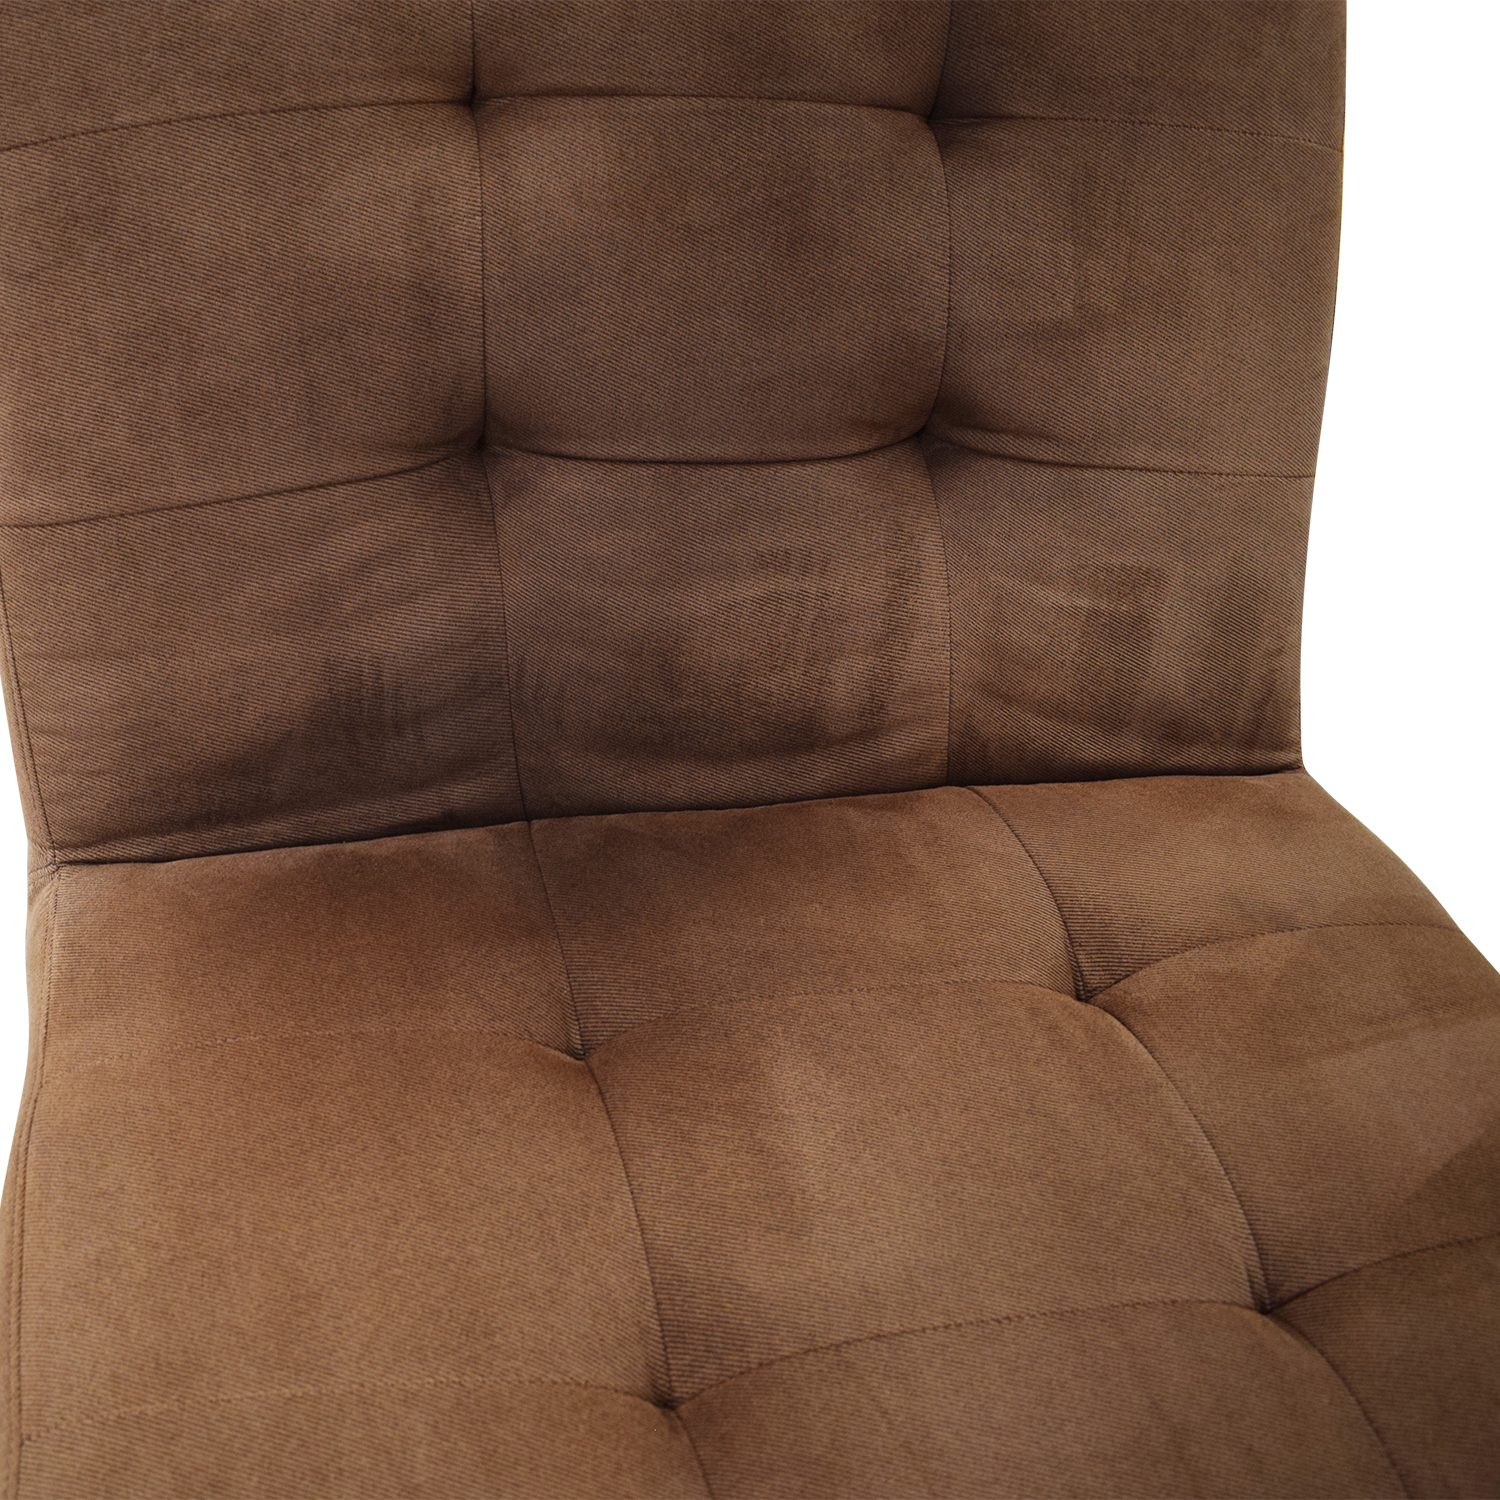 Macy's Arched Chaise Lounge / Chaises